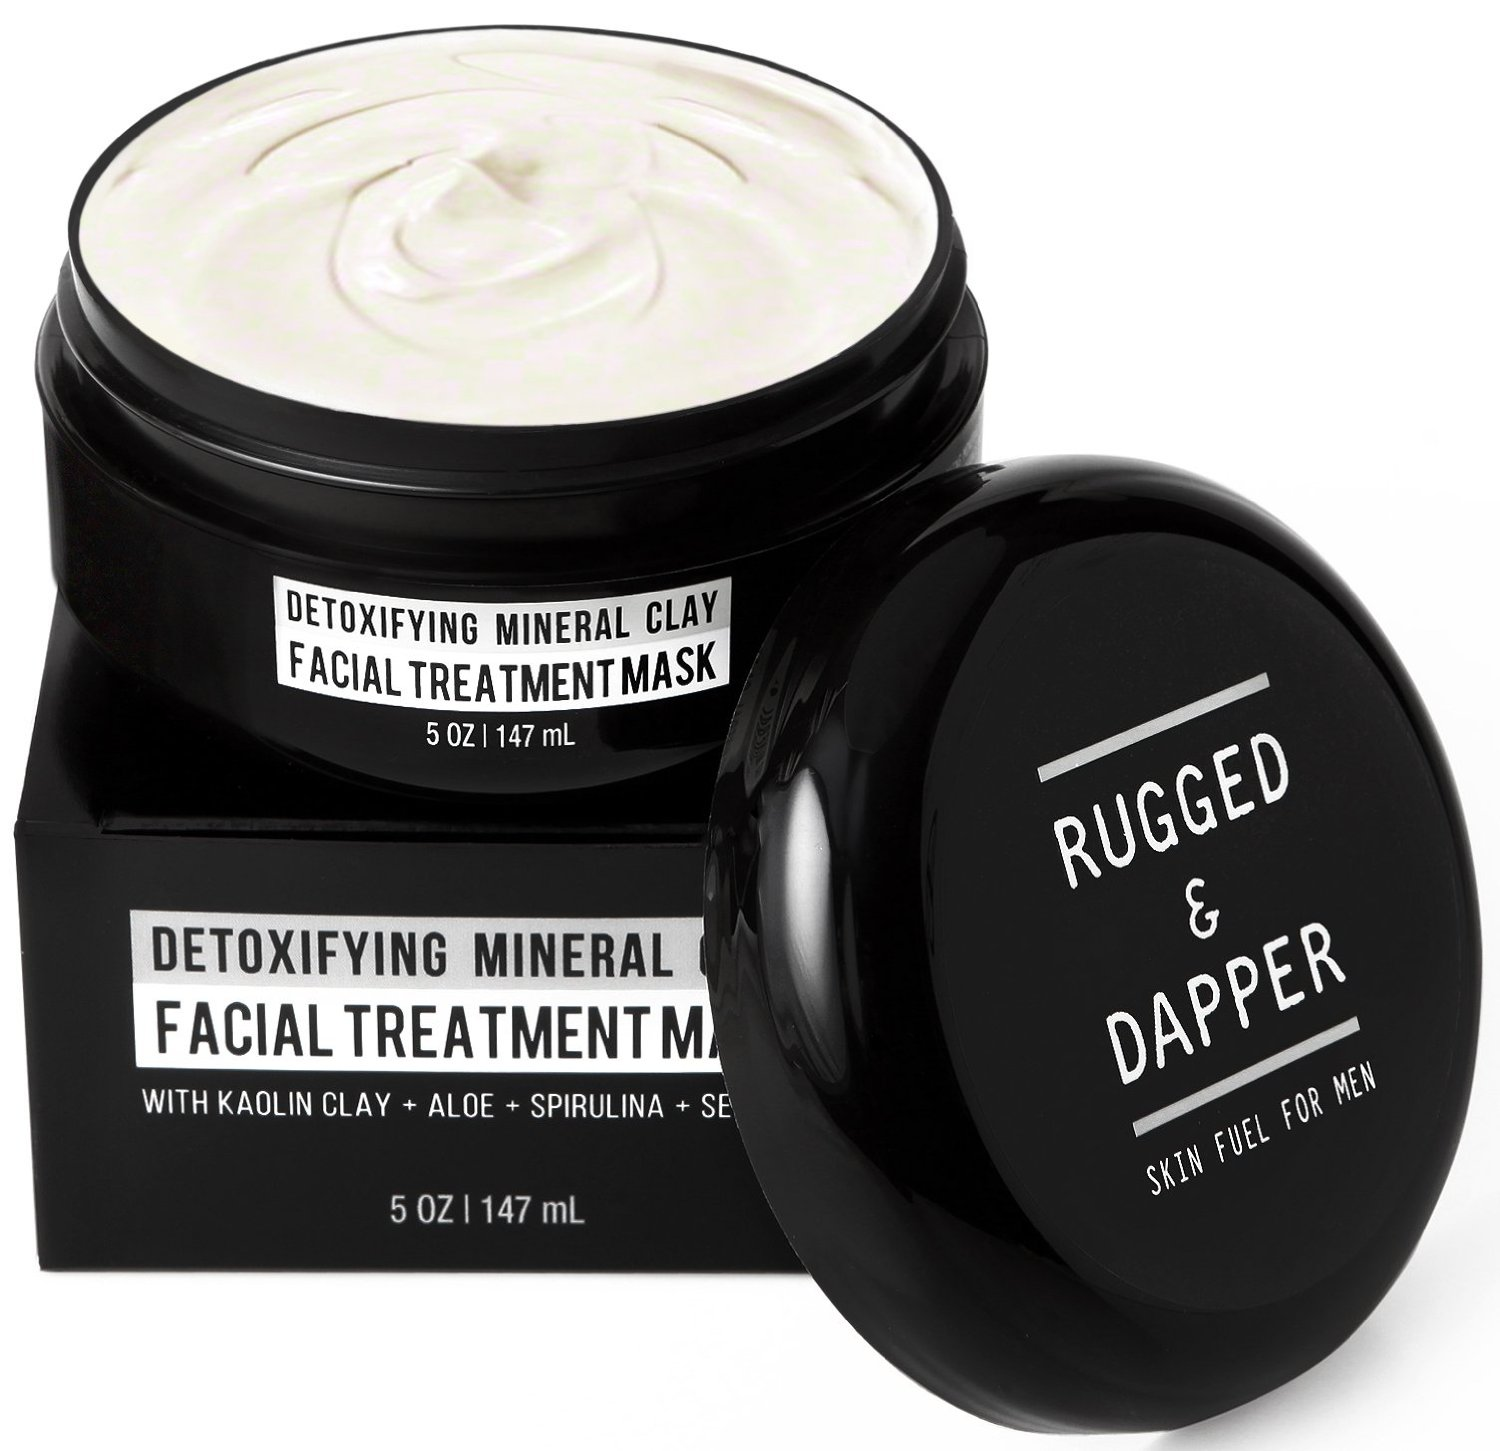 RUGGED & DAPPER - Face Mask for Men - 5 oz - Detoxifying Facial Treatment with Kaolin Clay & Aloe - Purifying & Deep Cleansing Formula Helps with Blackheads & Acne – Natural & Organic Ingredients